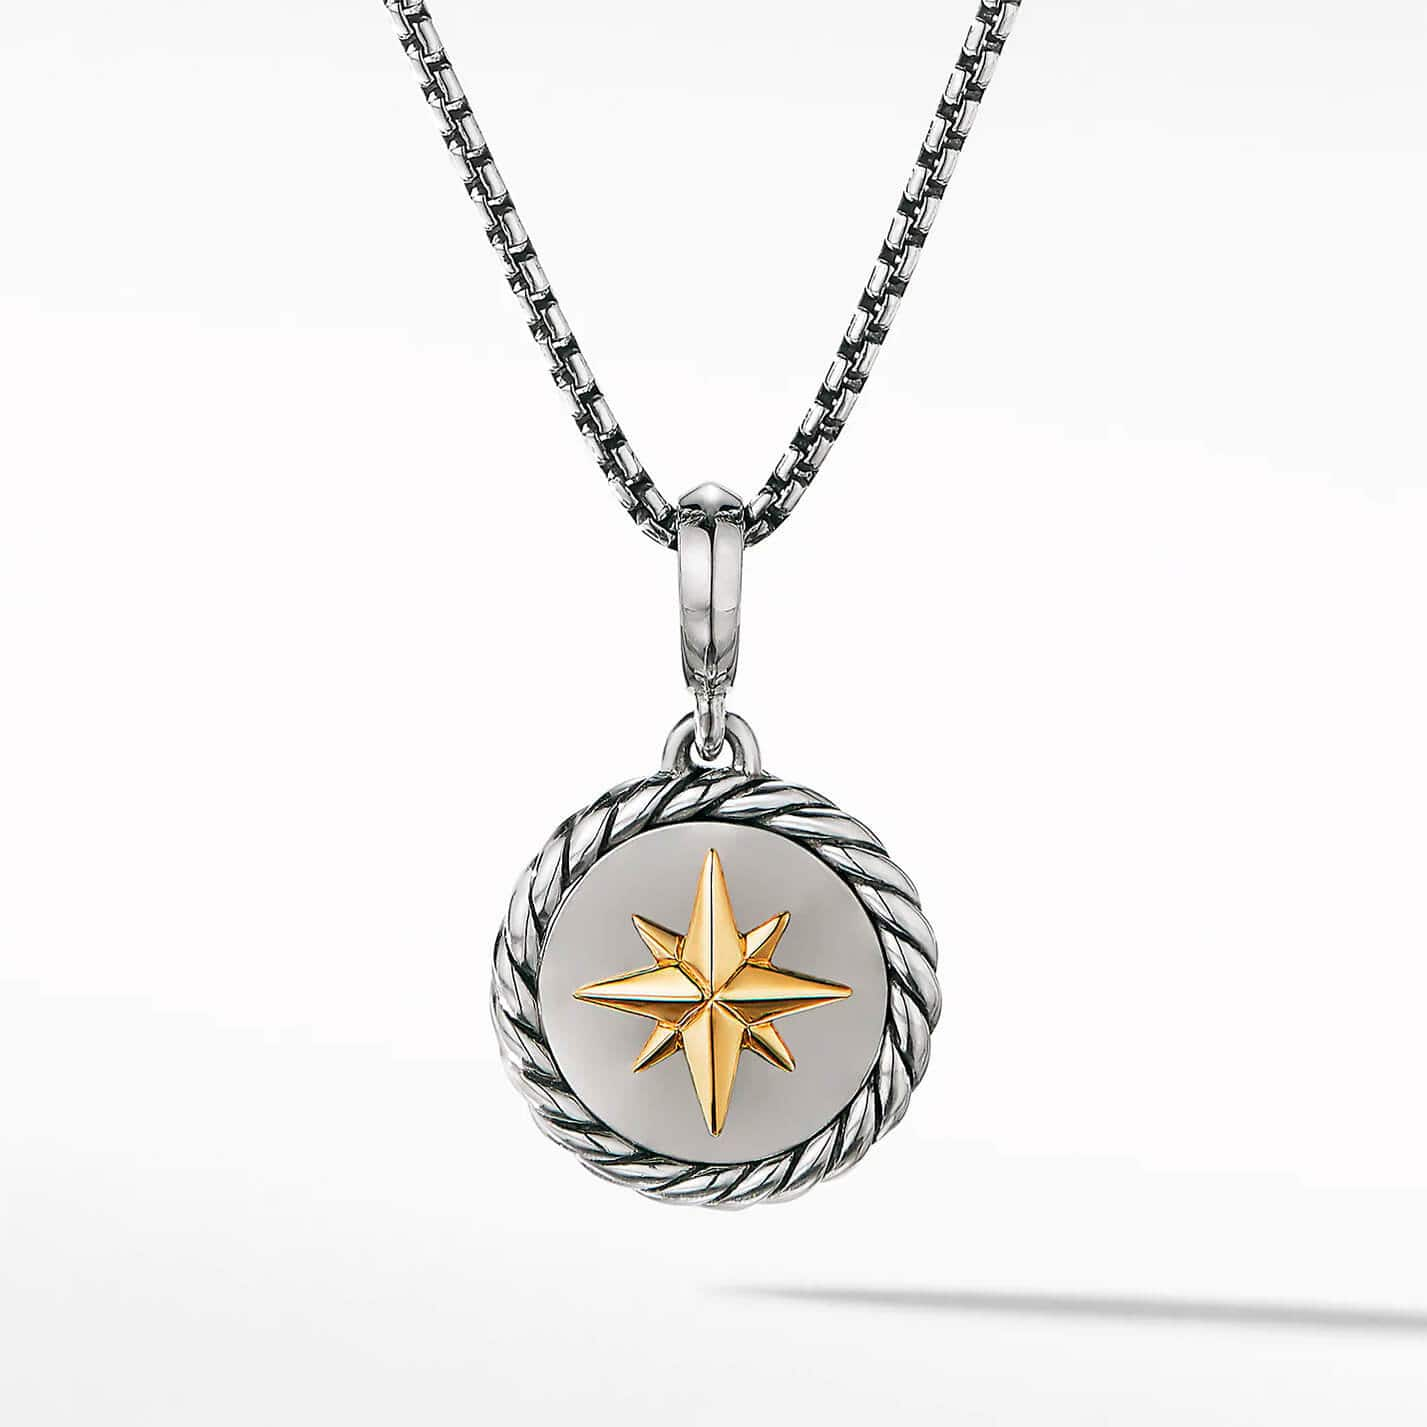 Product image of North Star Necklace with 18K Yellow Gold